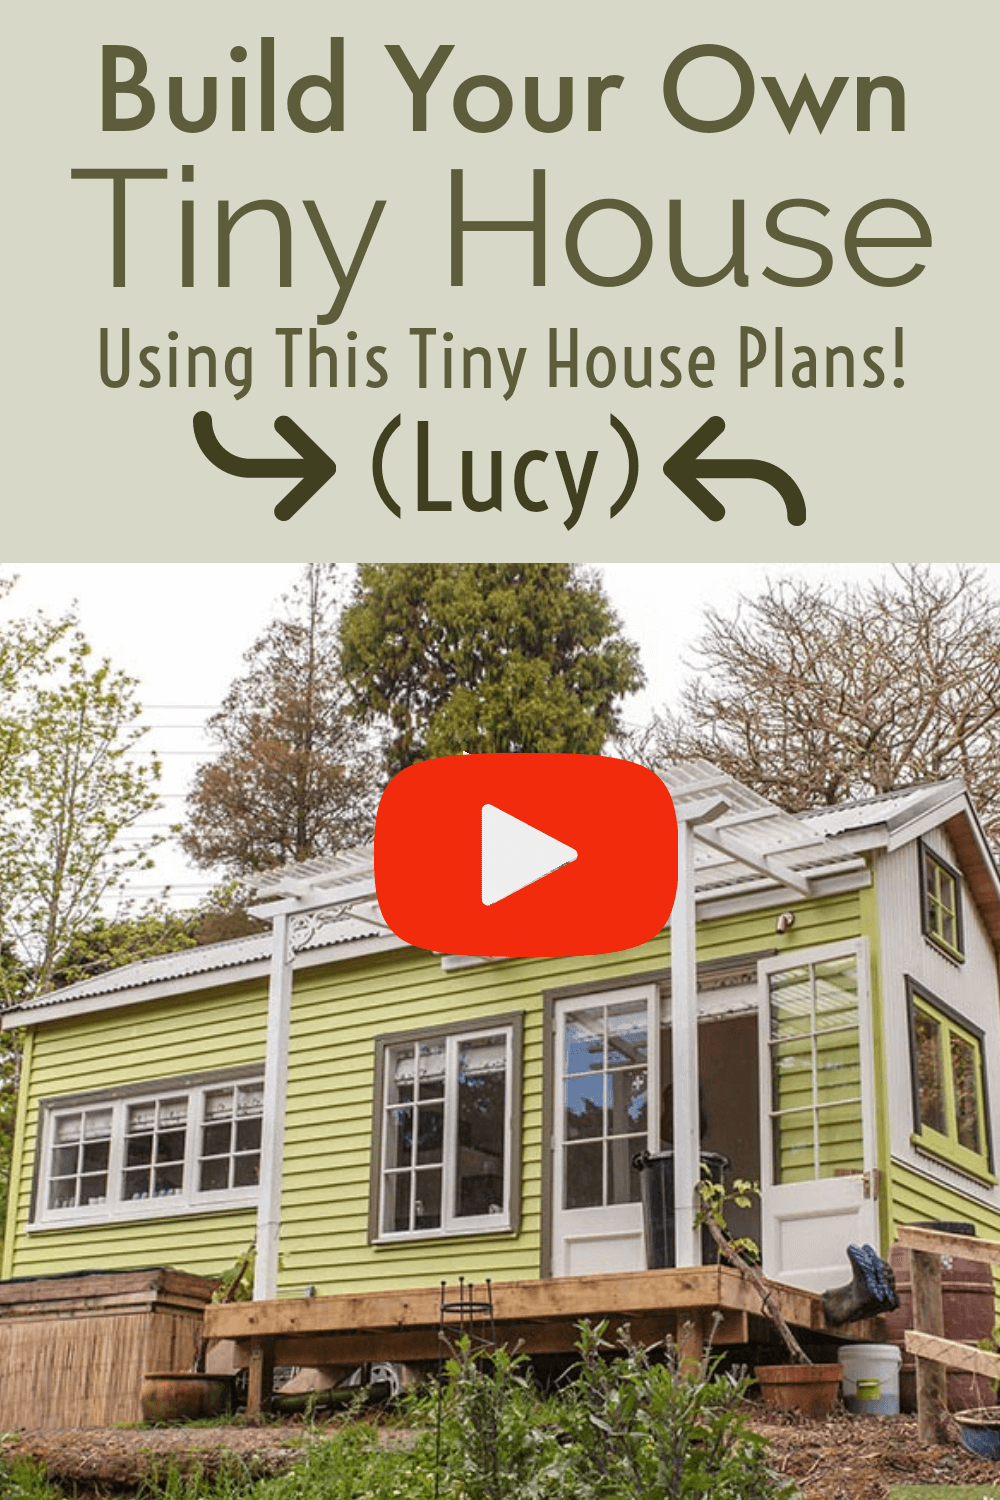 Lucy Tiny House Plans